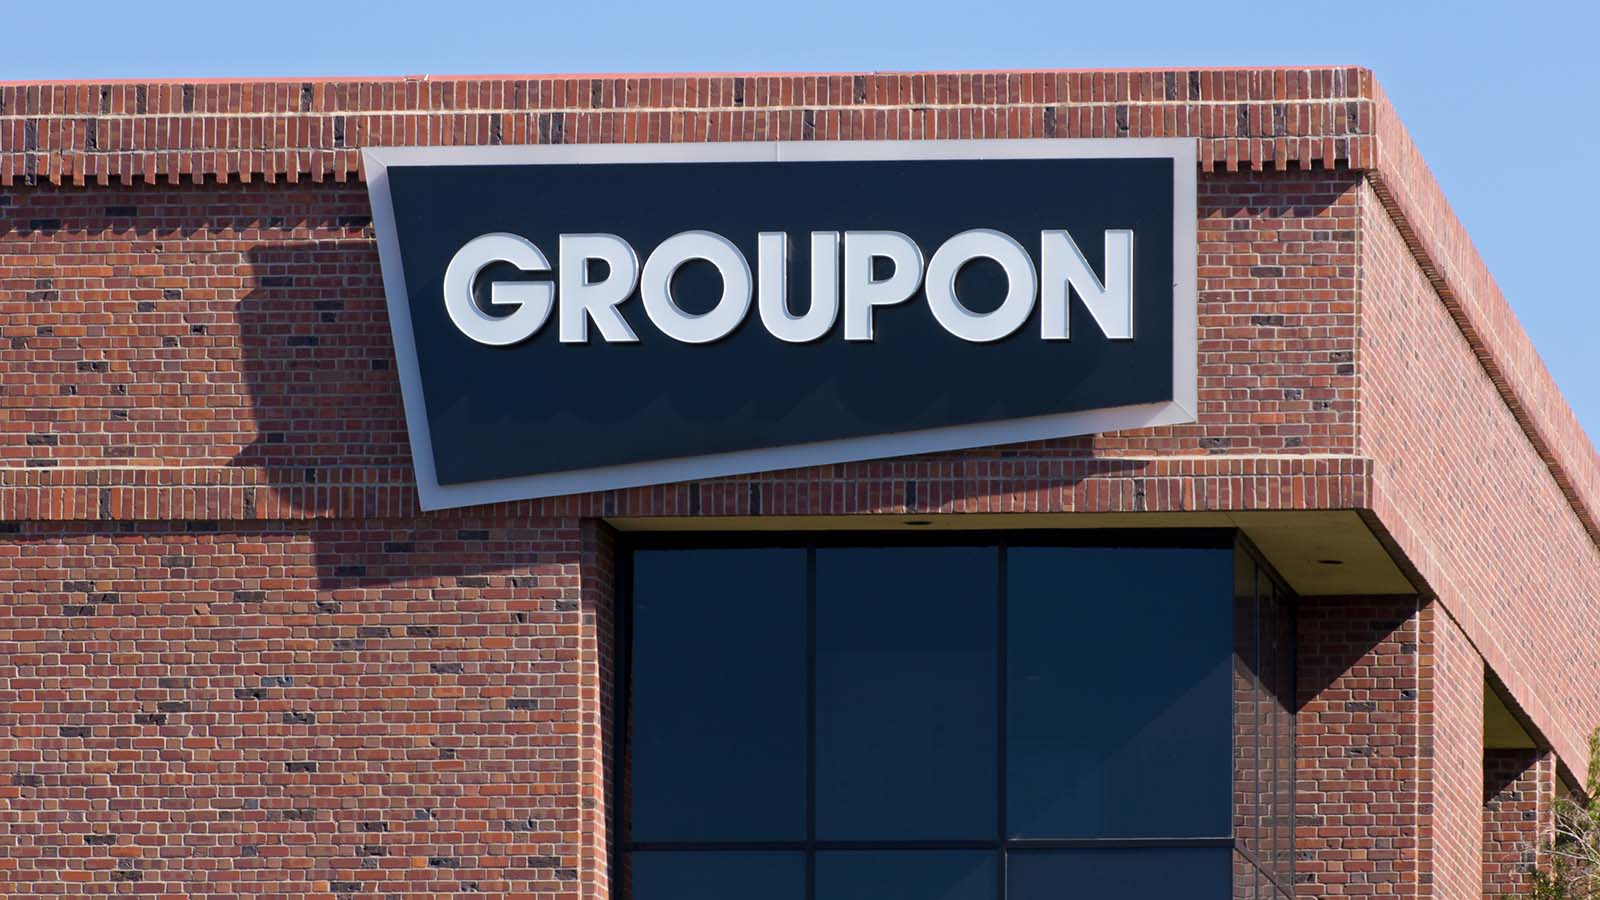 Groupon Yelp Merger